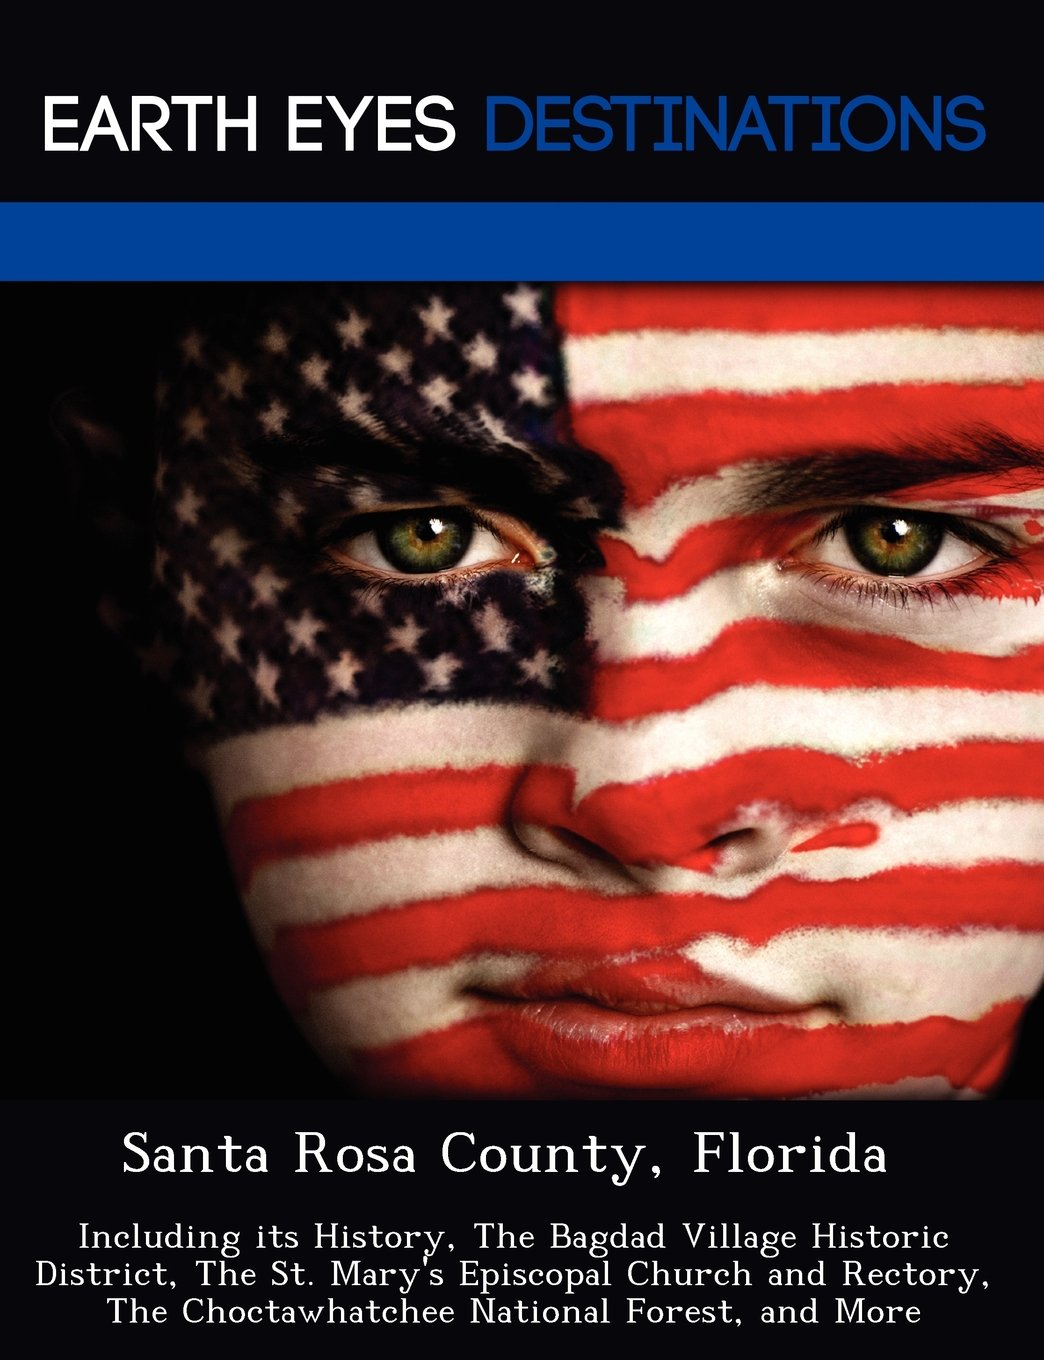 Santa Rosa County, Florida: Including its History, The Bagdad Village Historic District, The St. Mary's Episcopal Church and Rectory, The Choctawhatchee National Forest, and More pdf epub